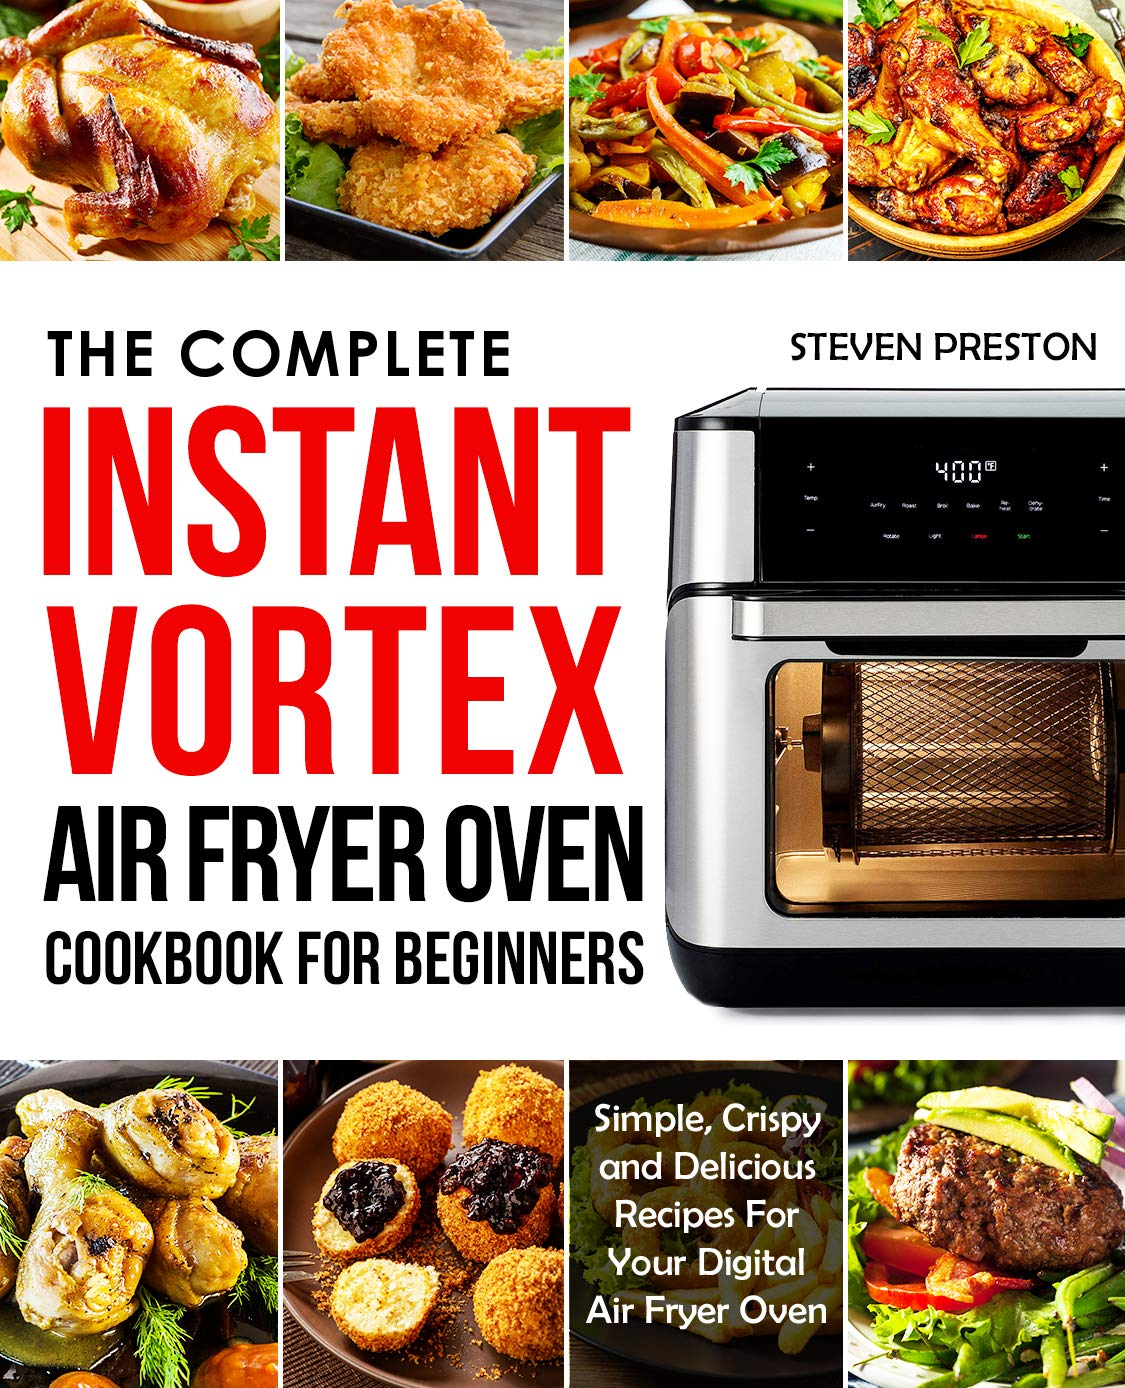 The Complete Instant Vortex Air Fryer Oven Cookbook For Beginners: Simple, Crispy and Delicious Recipes For Your Digital Air Fryer Oven